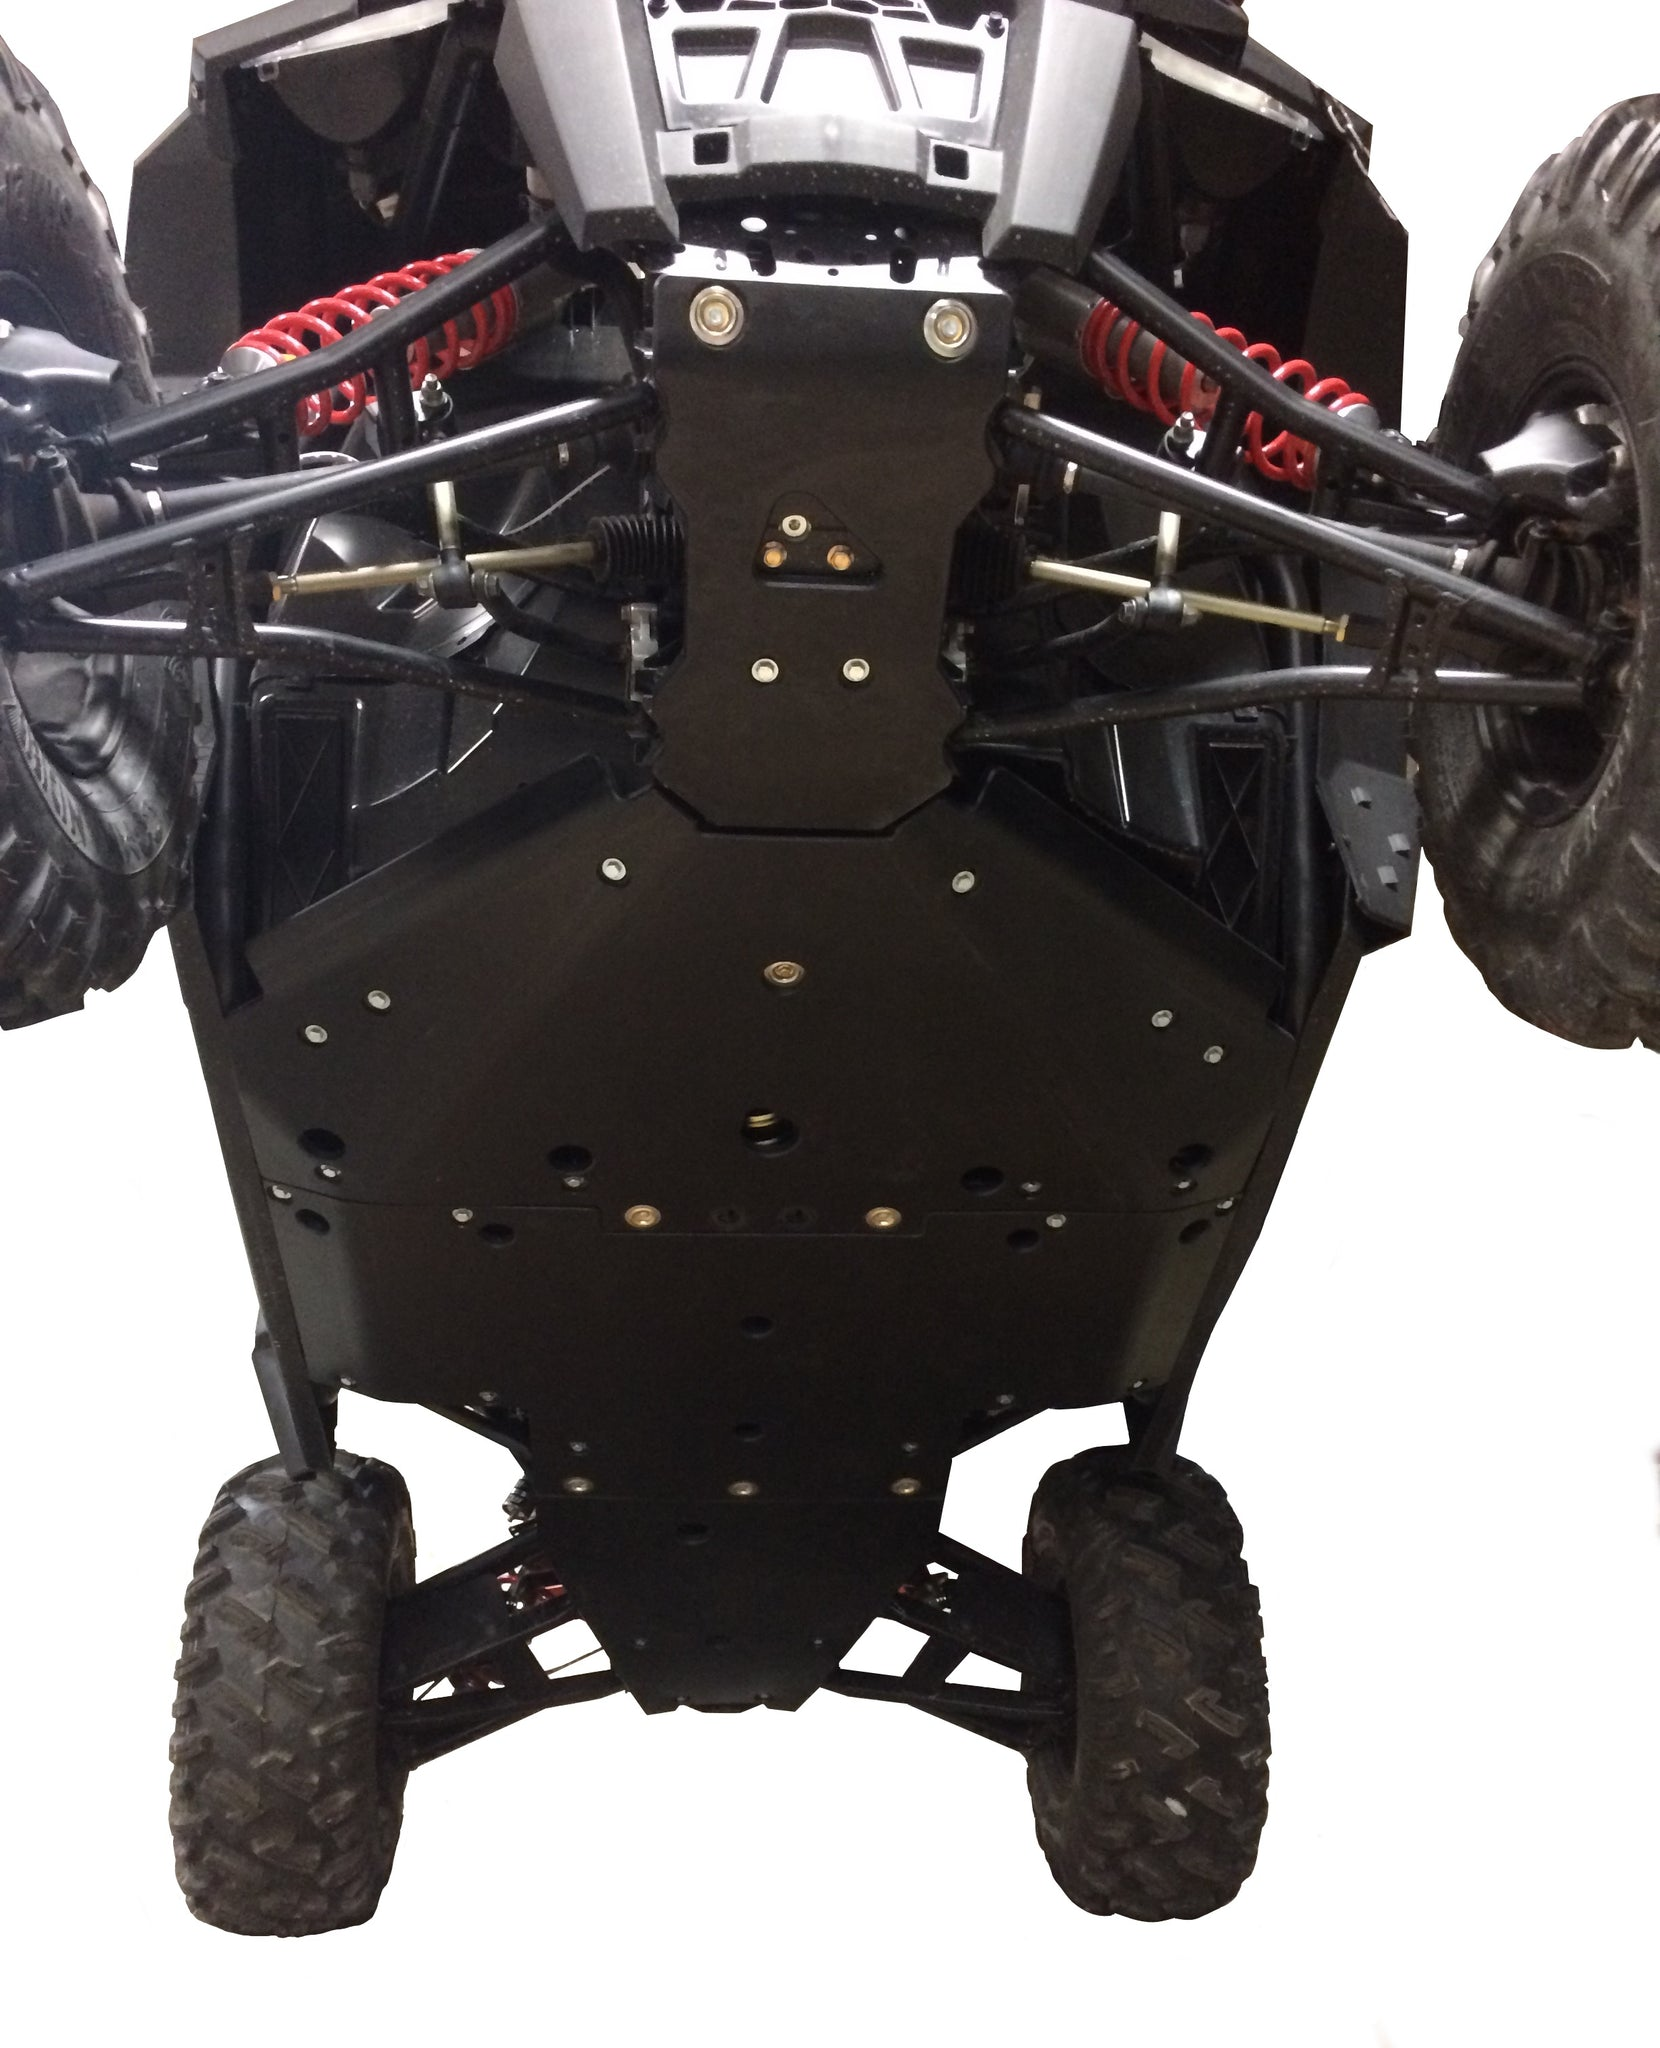 4-Piece Full Frame Skid Plate Set, Polaris RZR 900 XC